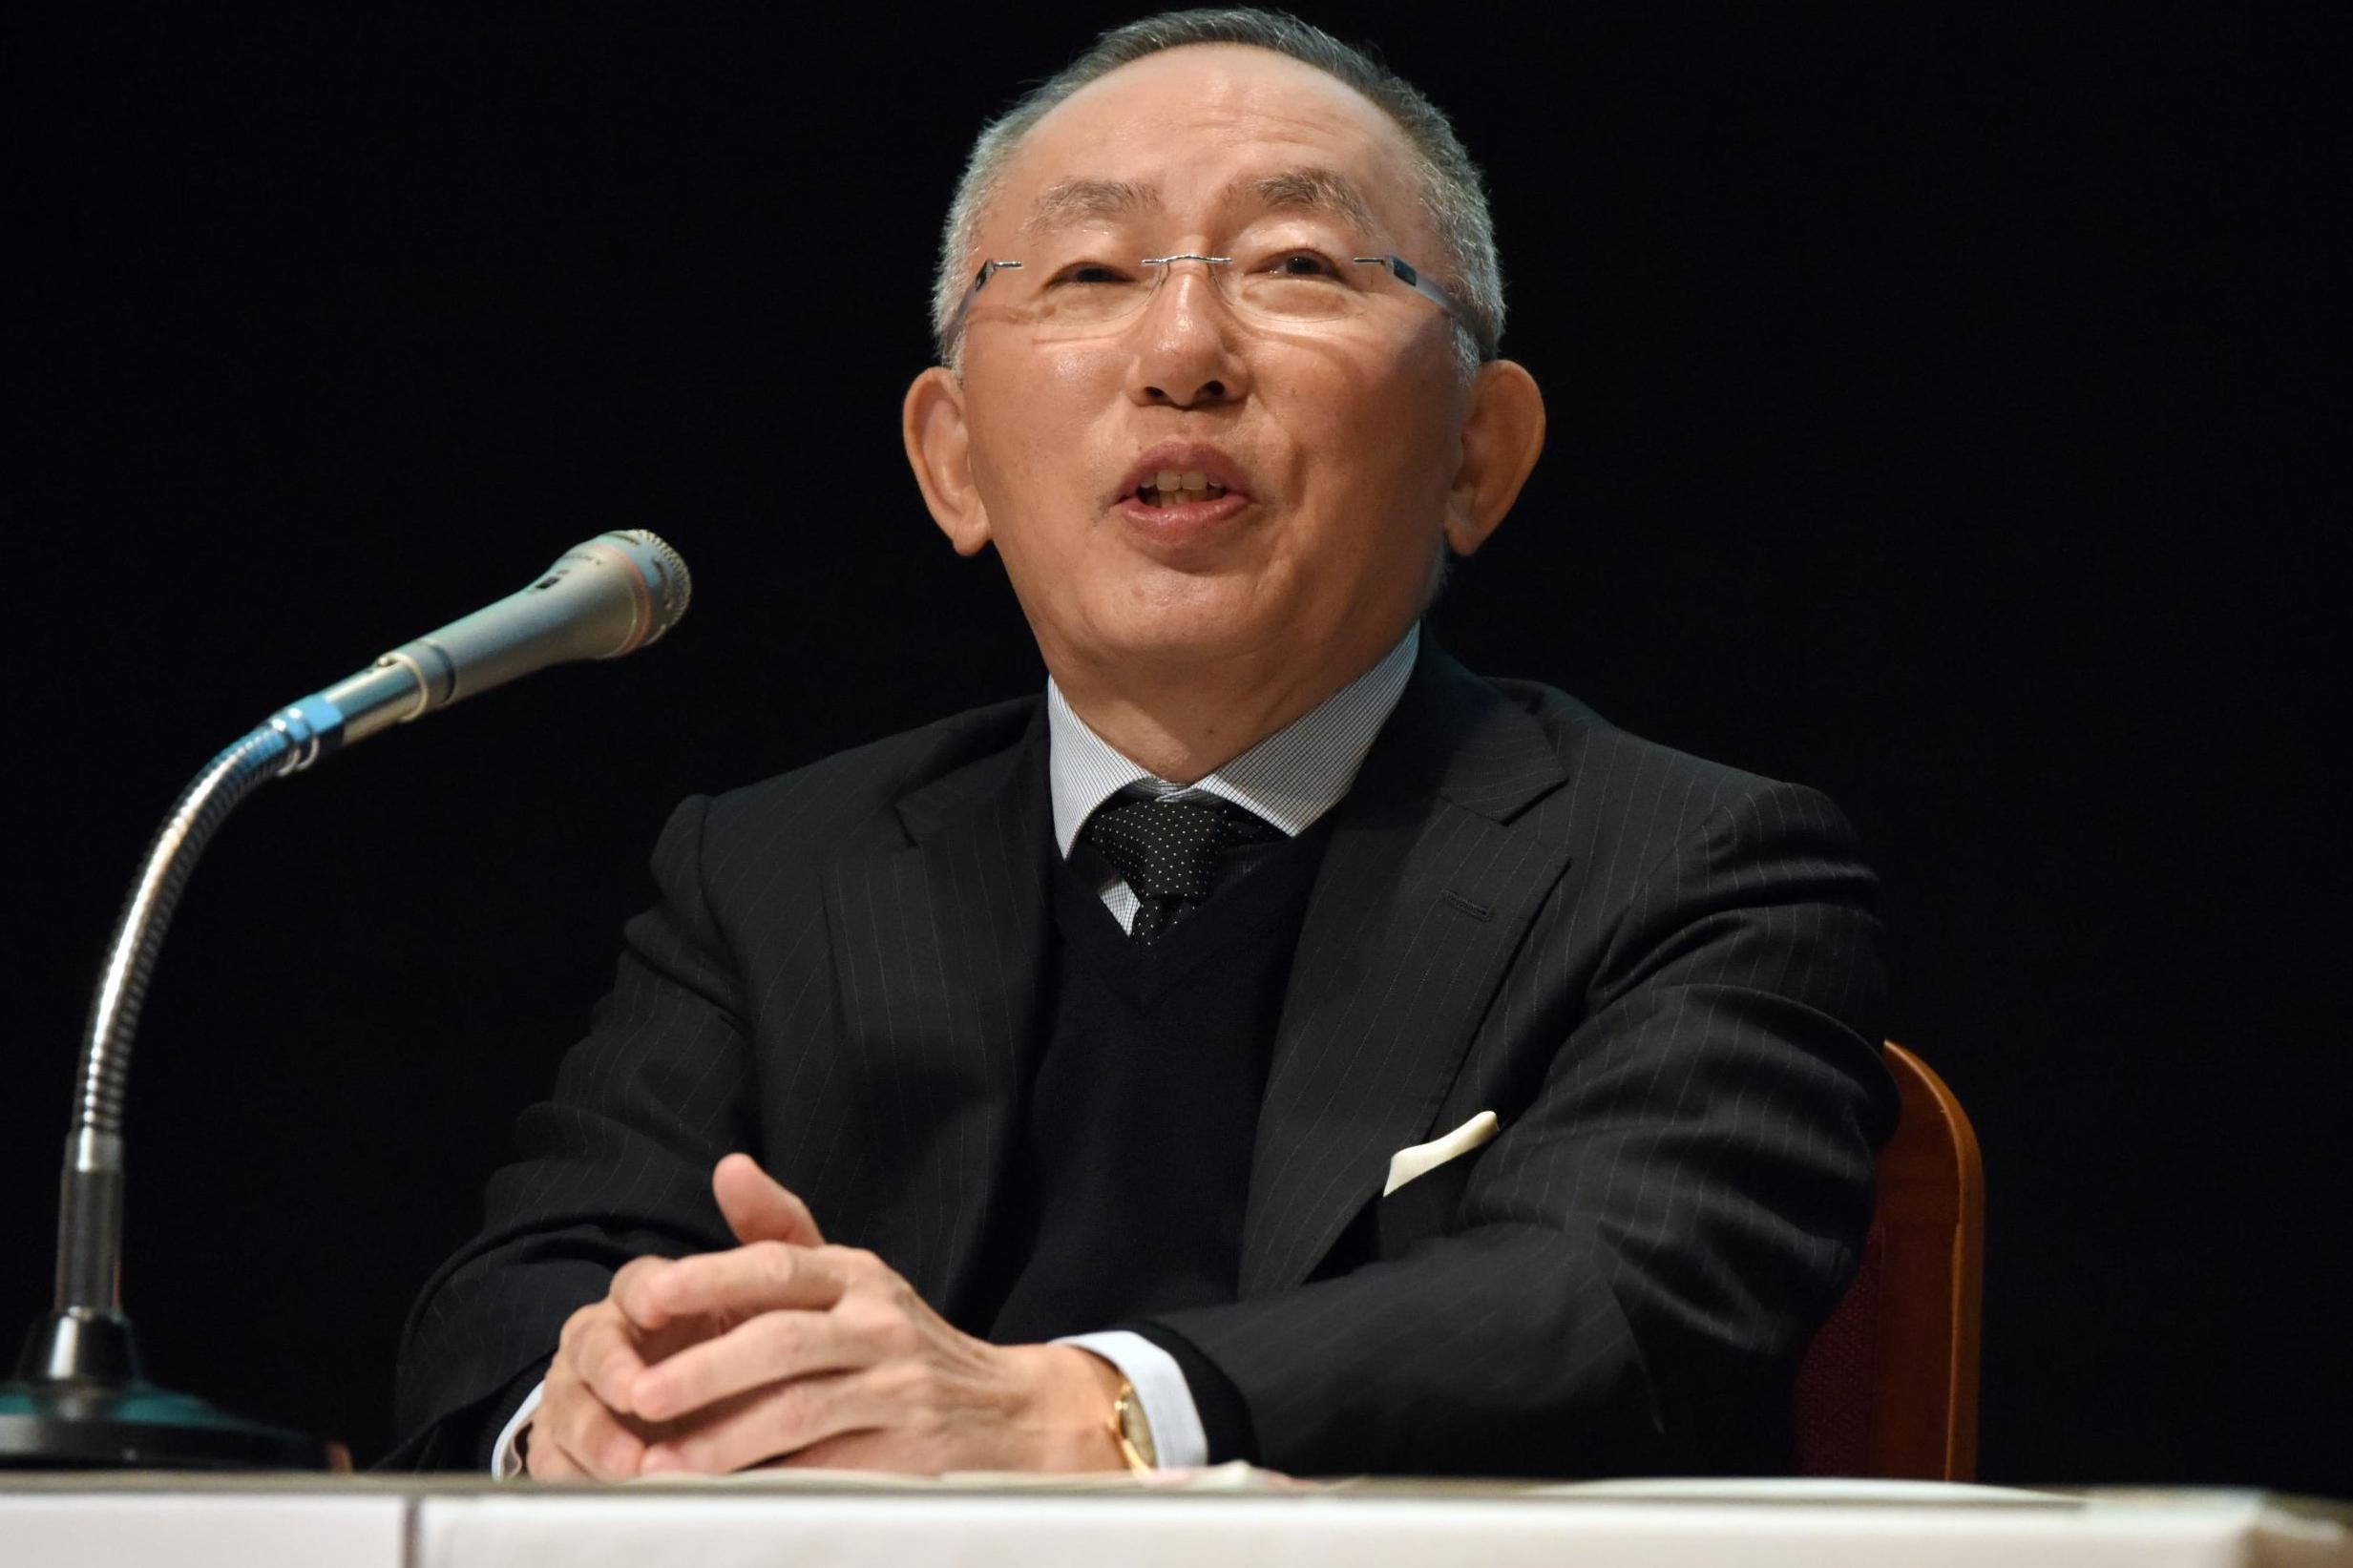 Billionaire Uniqlo founder and CEO wants his successor to be a woman